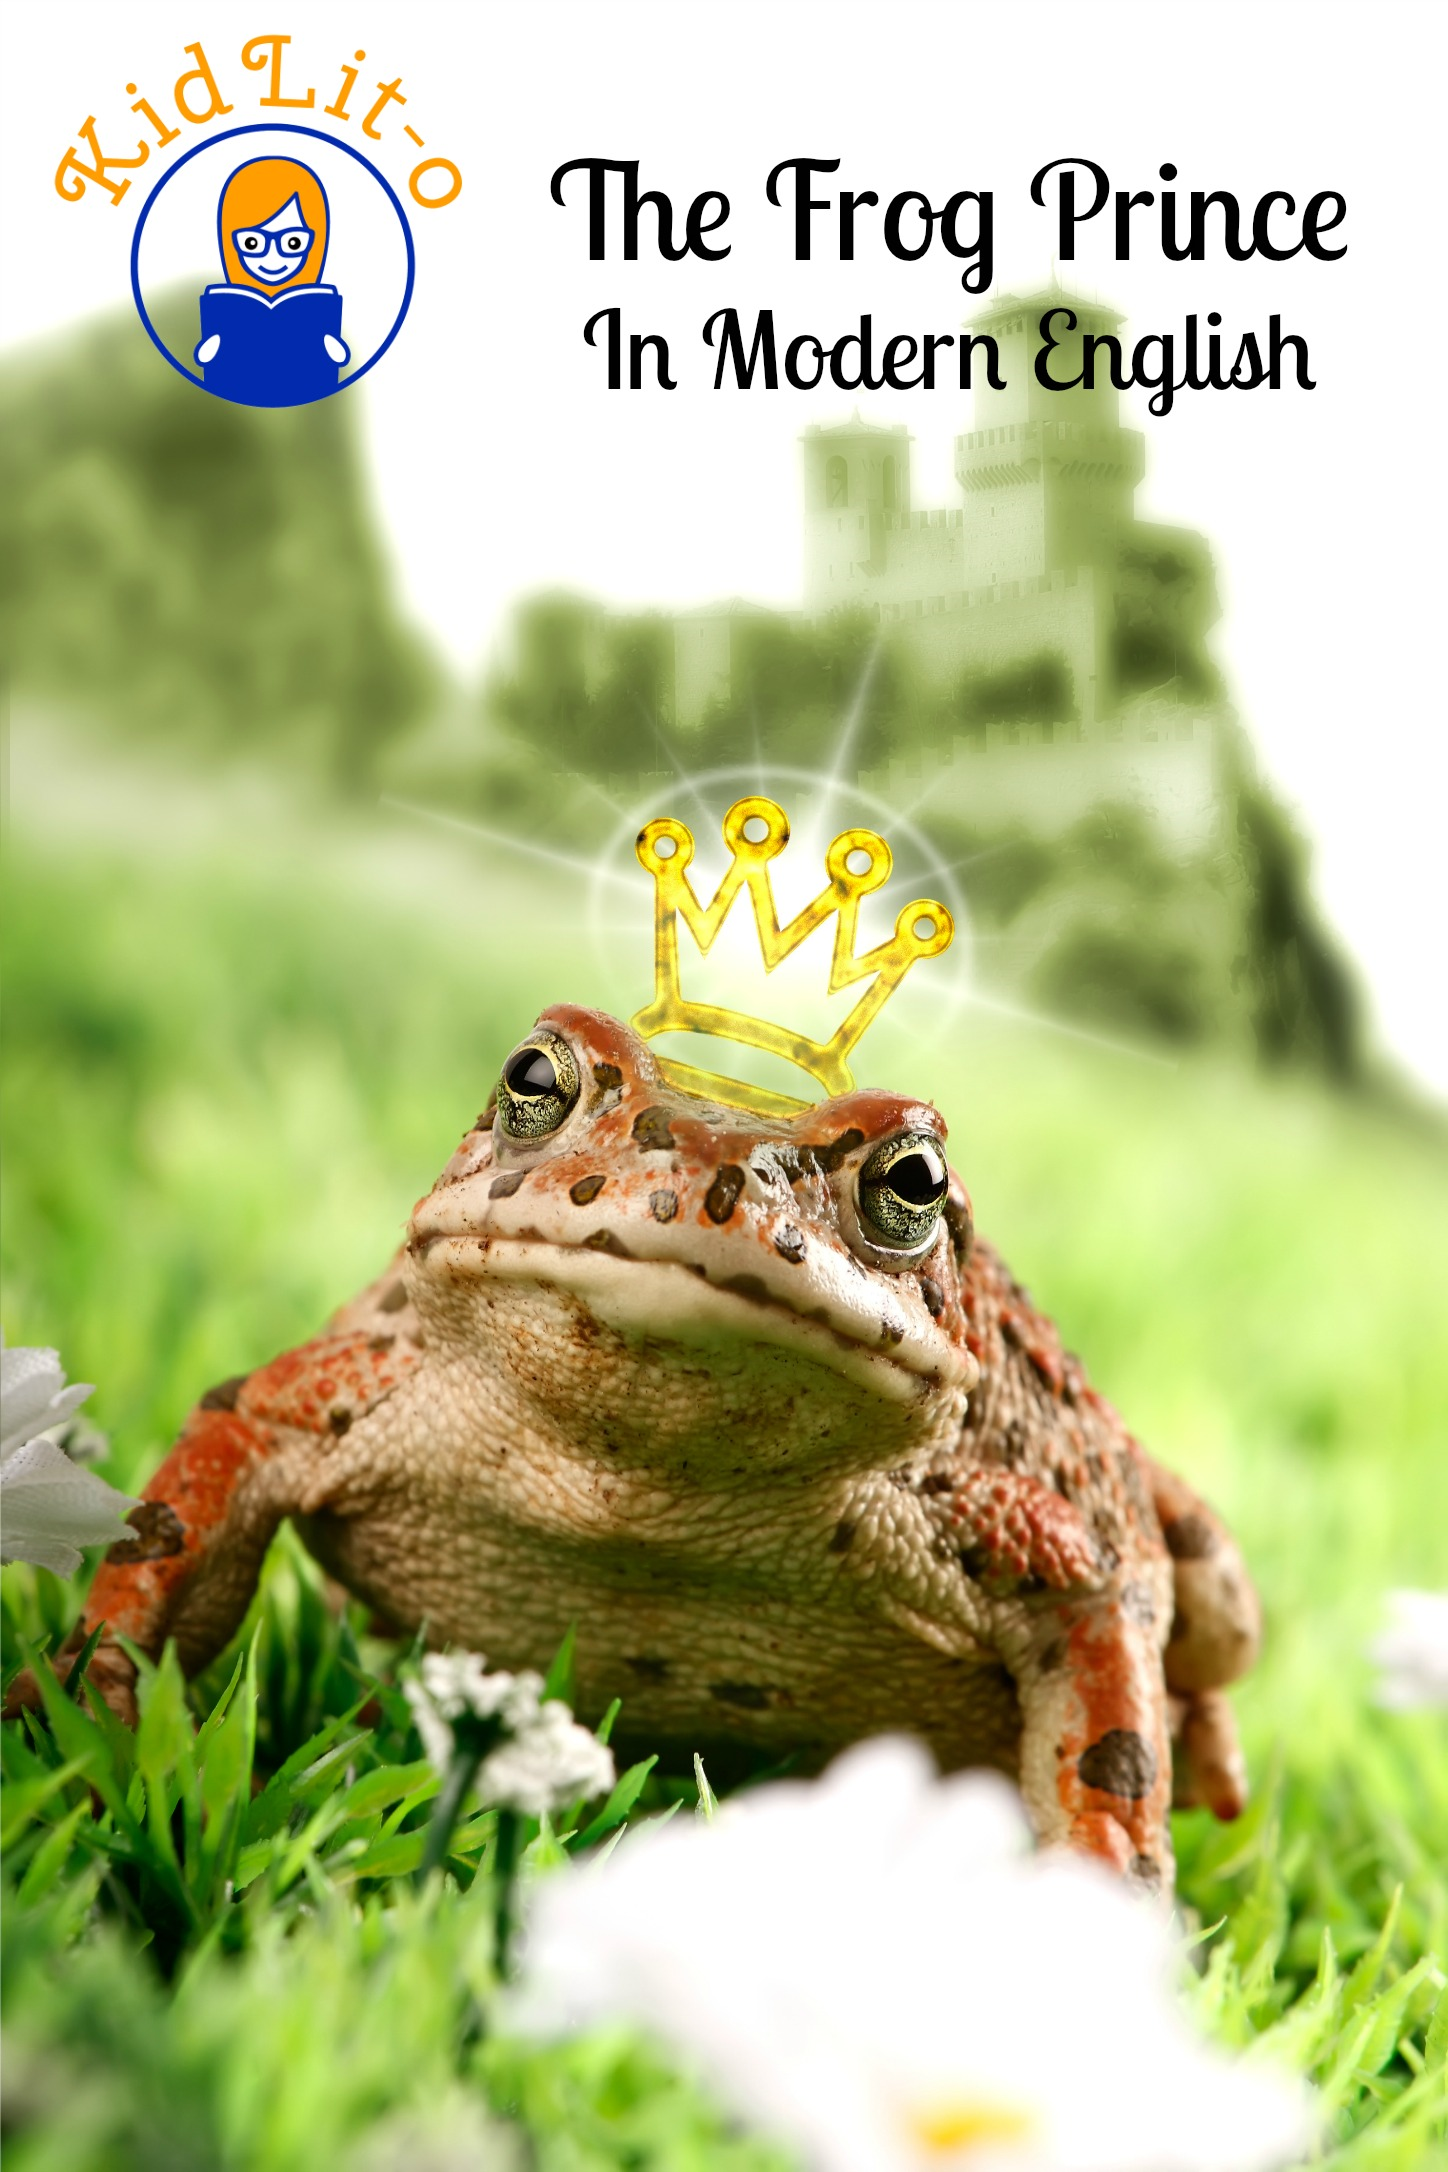 The Frog Prince In Modern English (Translated)